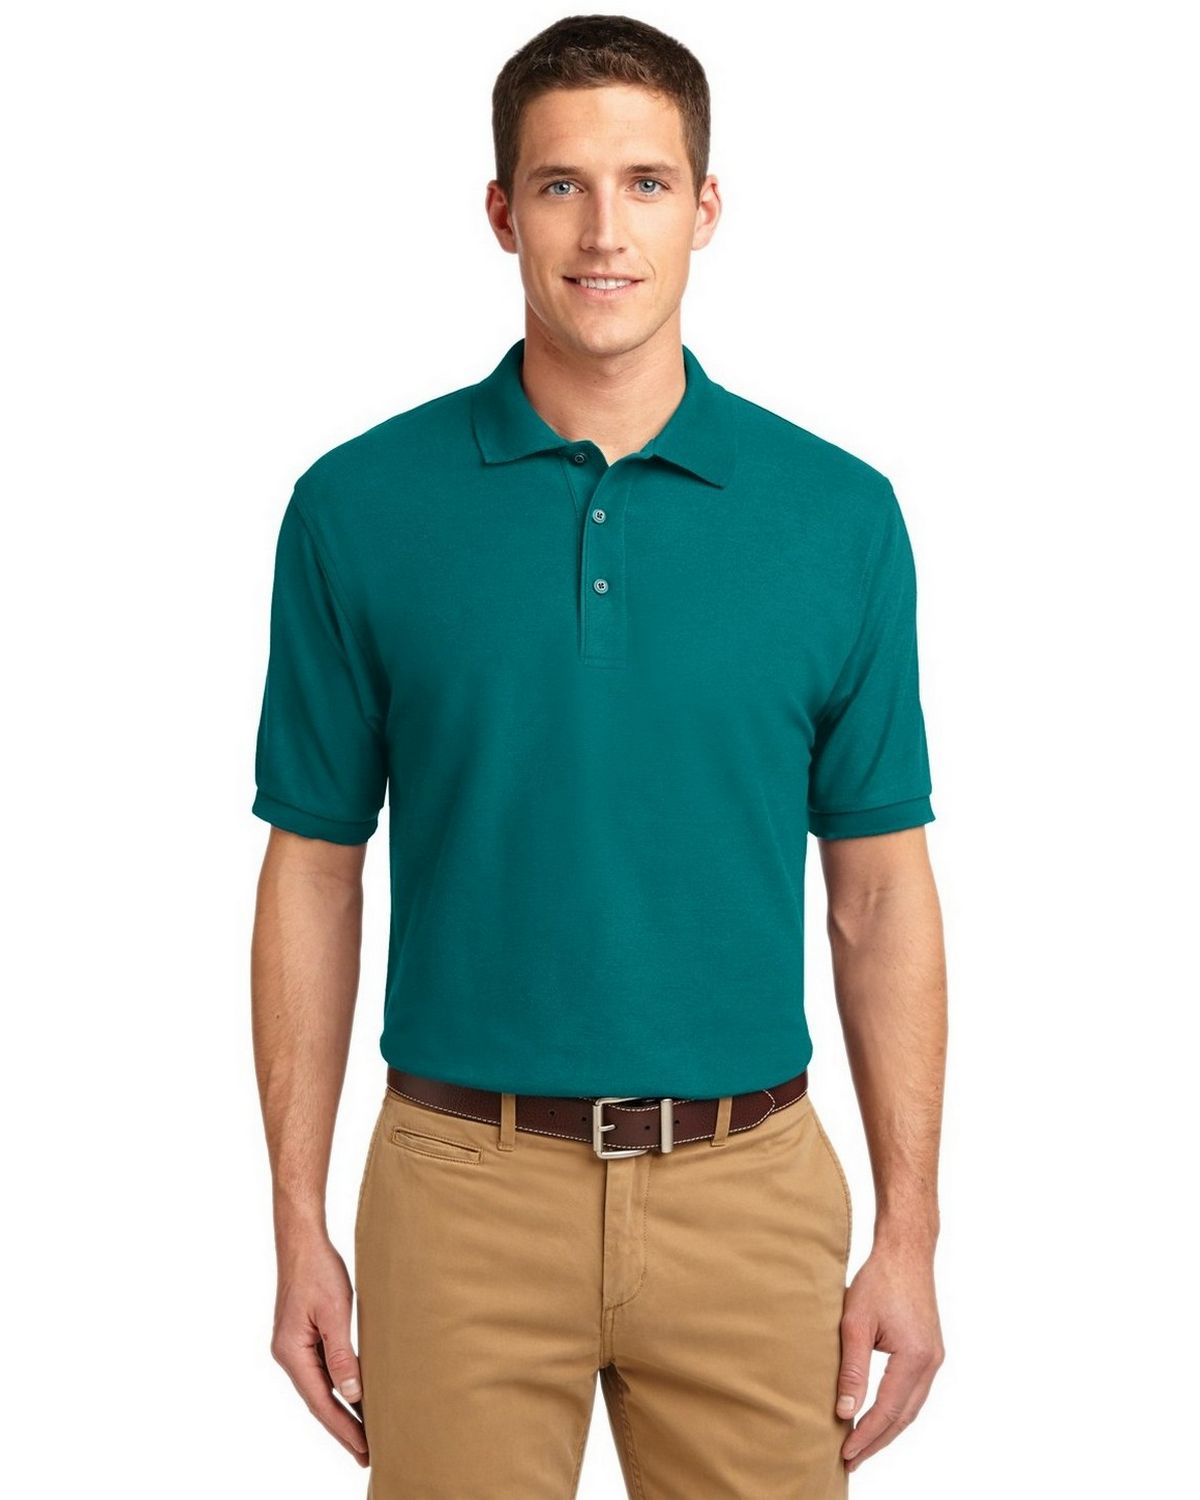 Port Authority TLK500 Men's Tall Silk Touch Polo - Teal Green - LT #silk